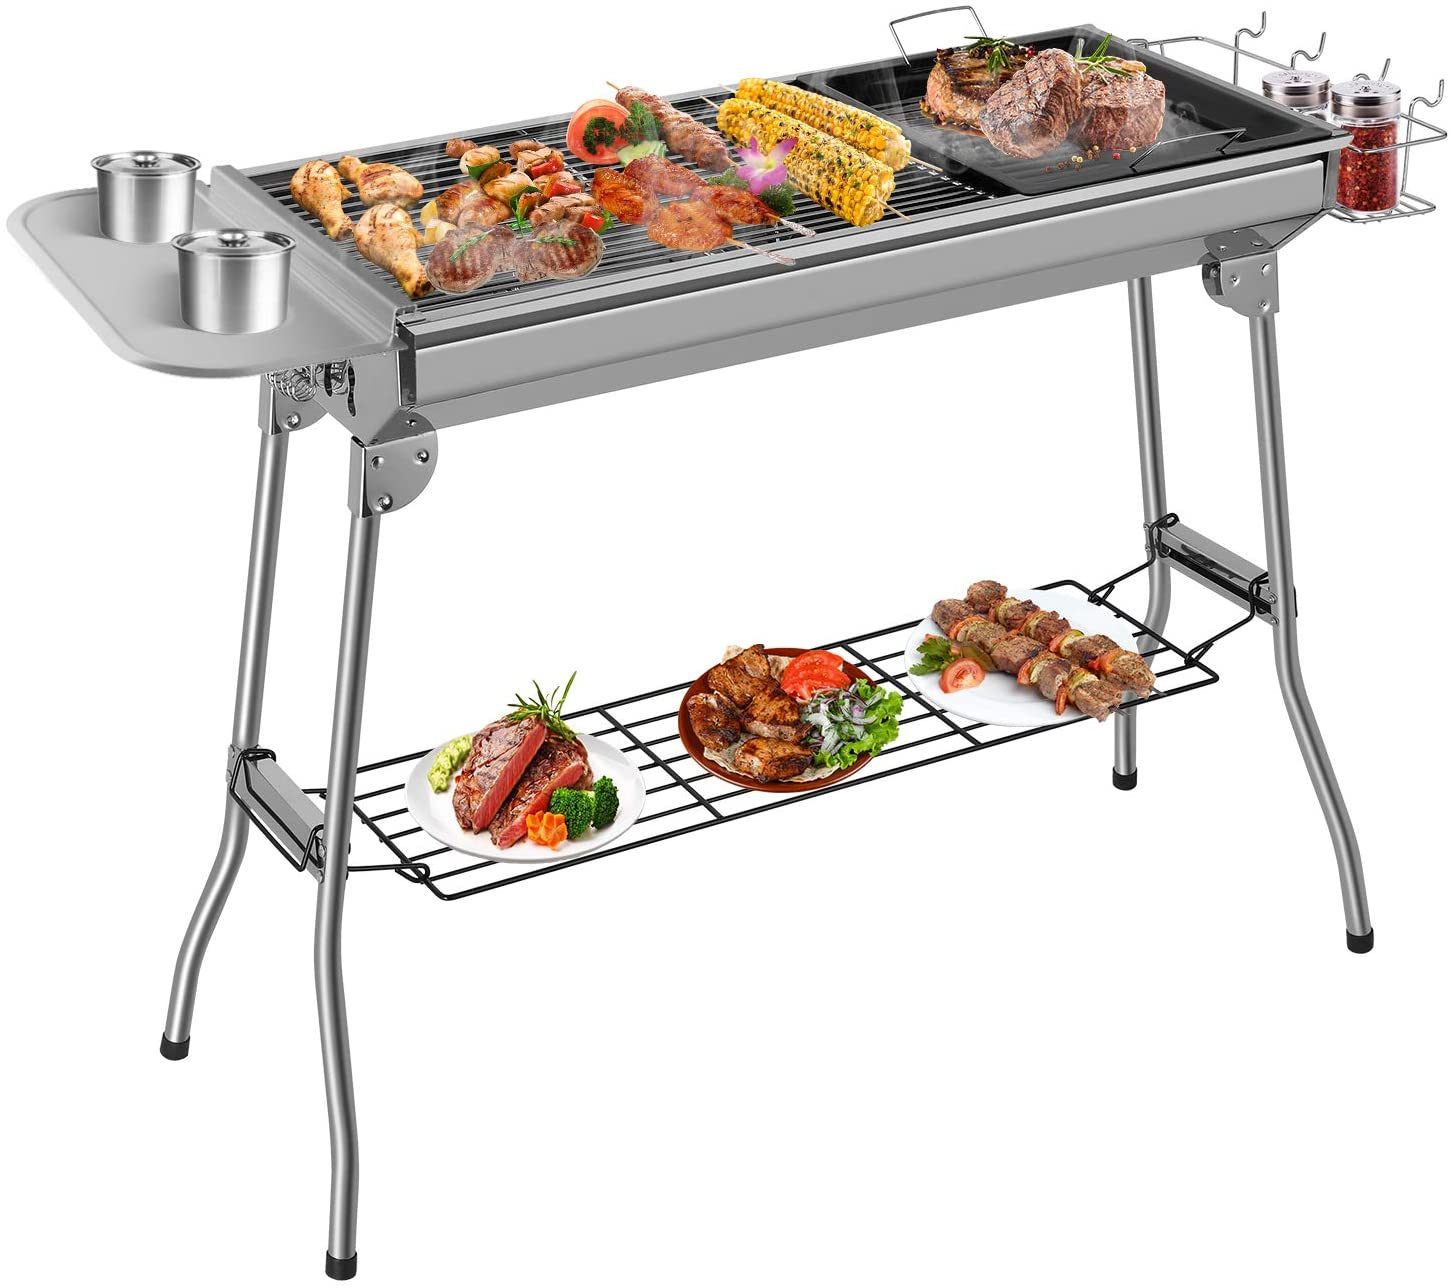 Femor Stainless Steel BBQ Grill